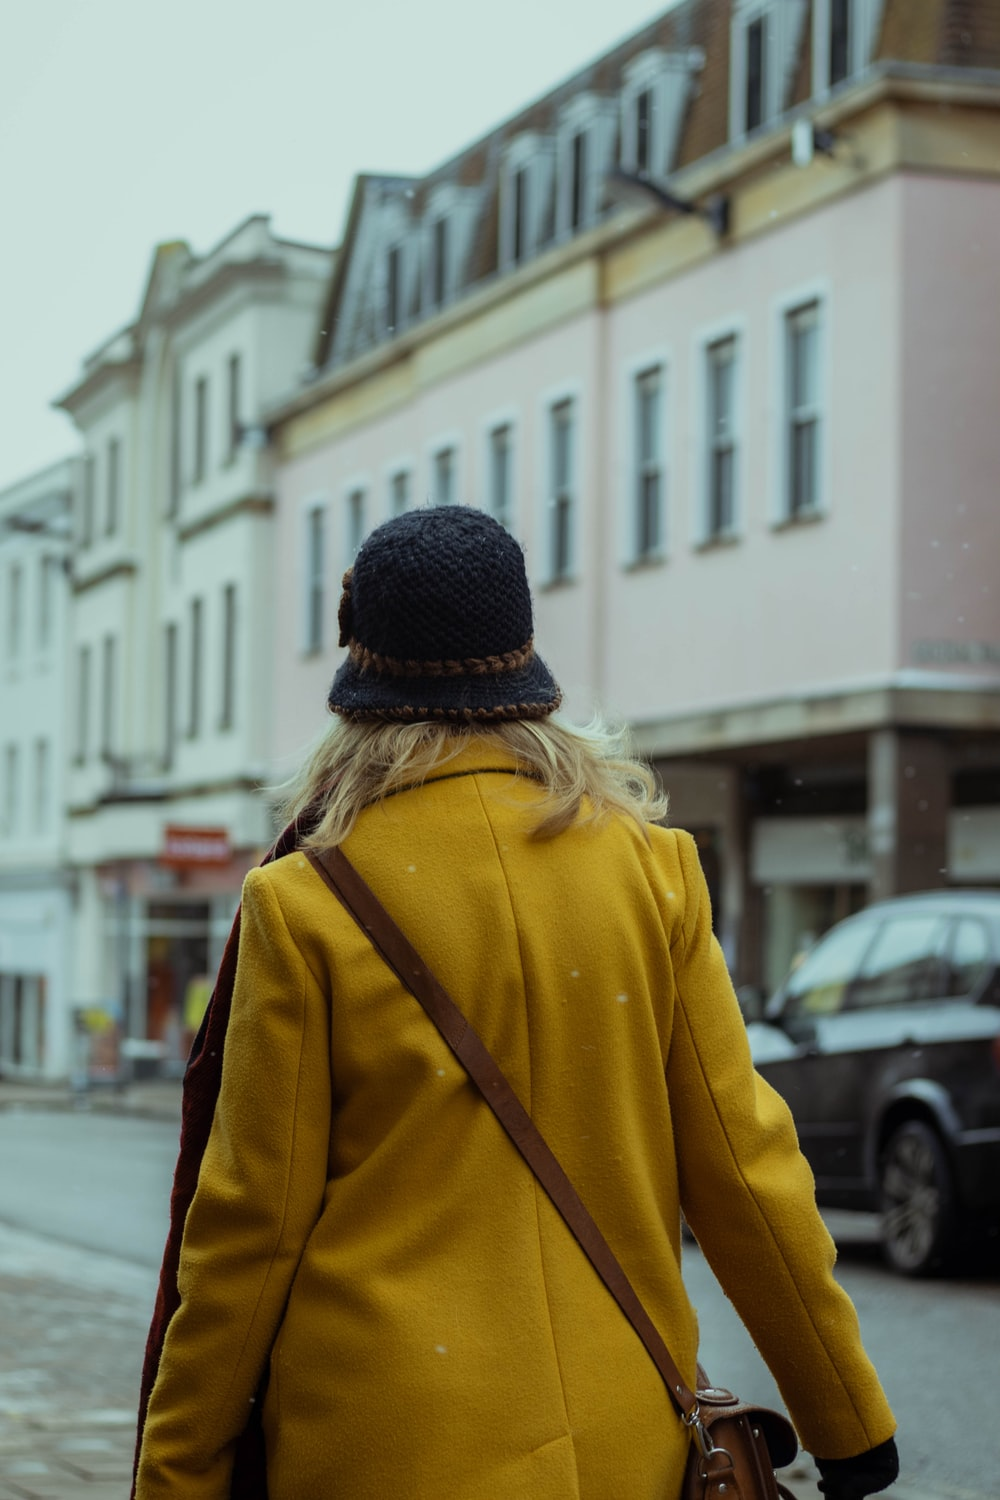 woman in yellow jacket and black knit cap walking on street during daytime